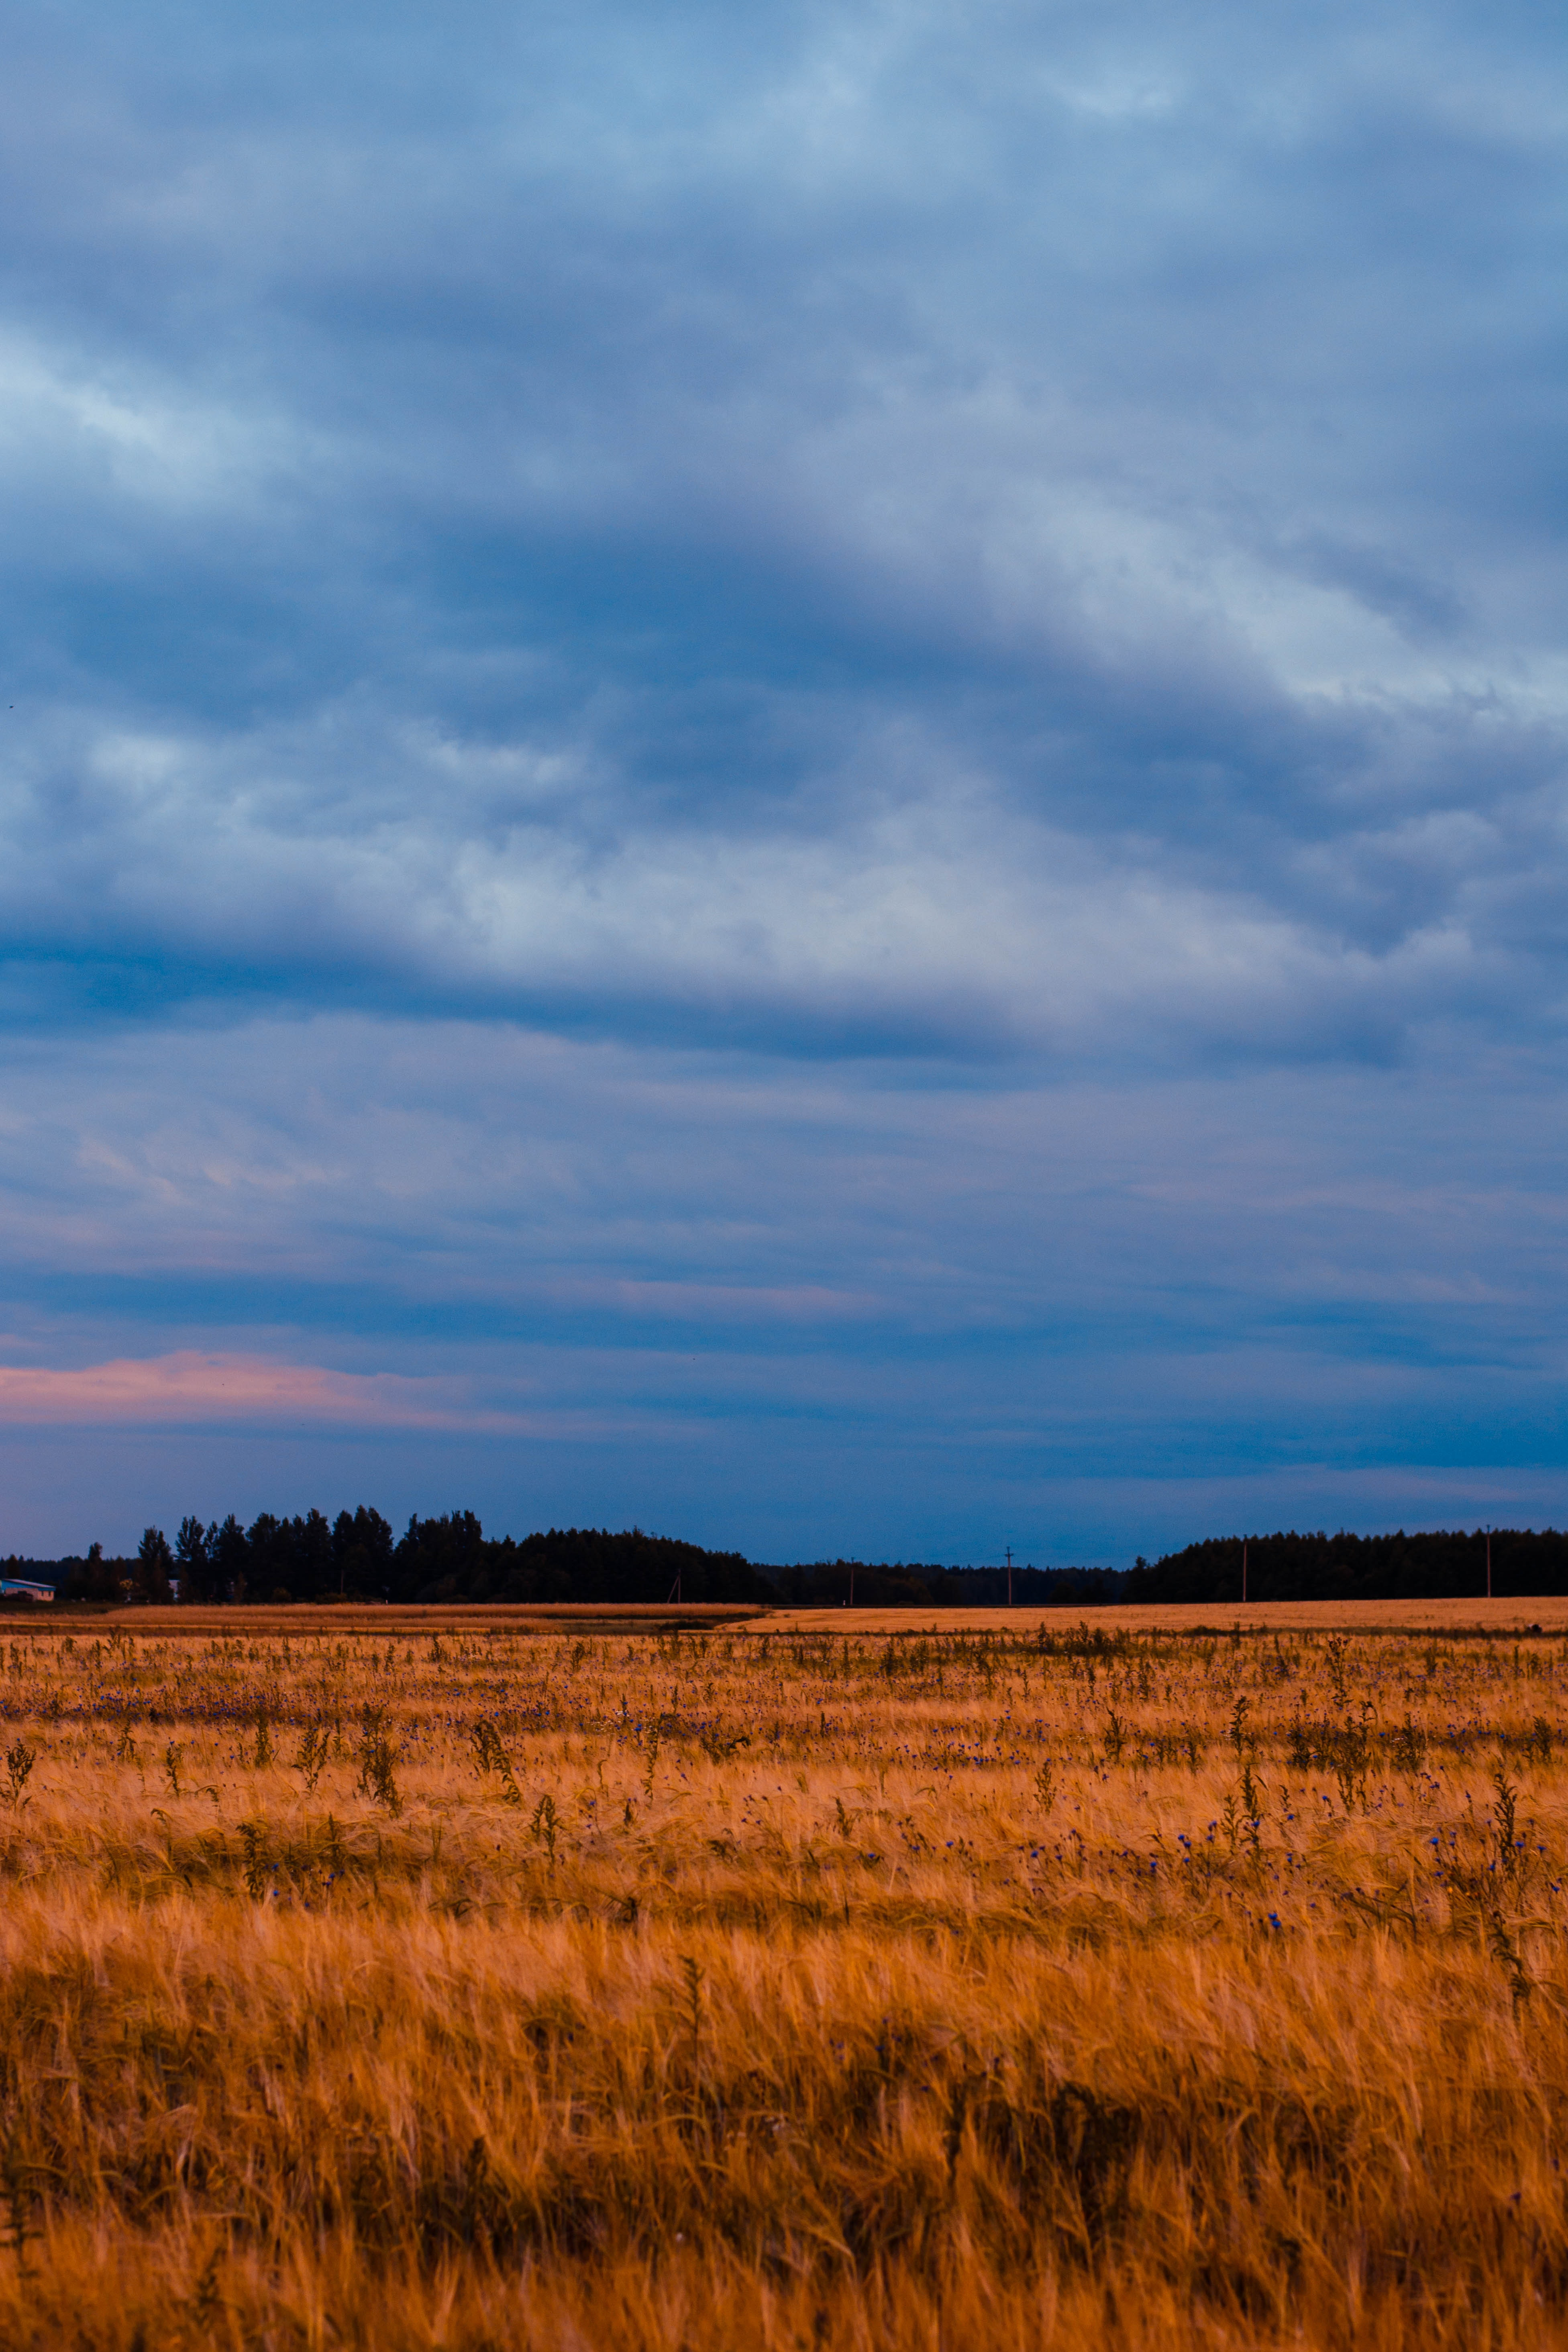 Brown grass field under blue and white cloudy sky photo